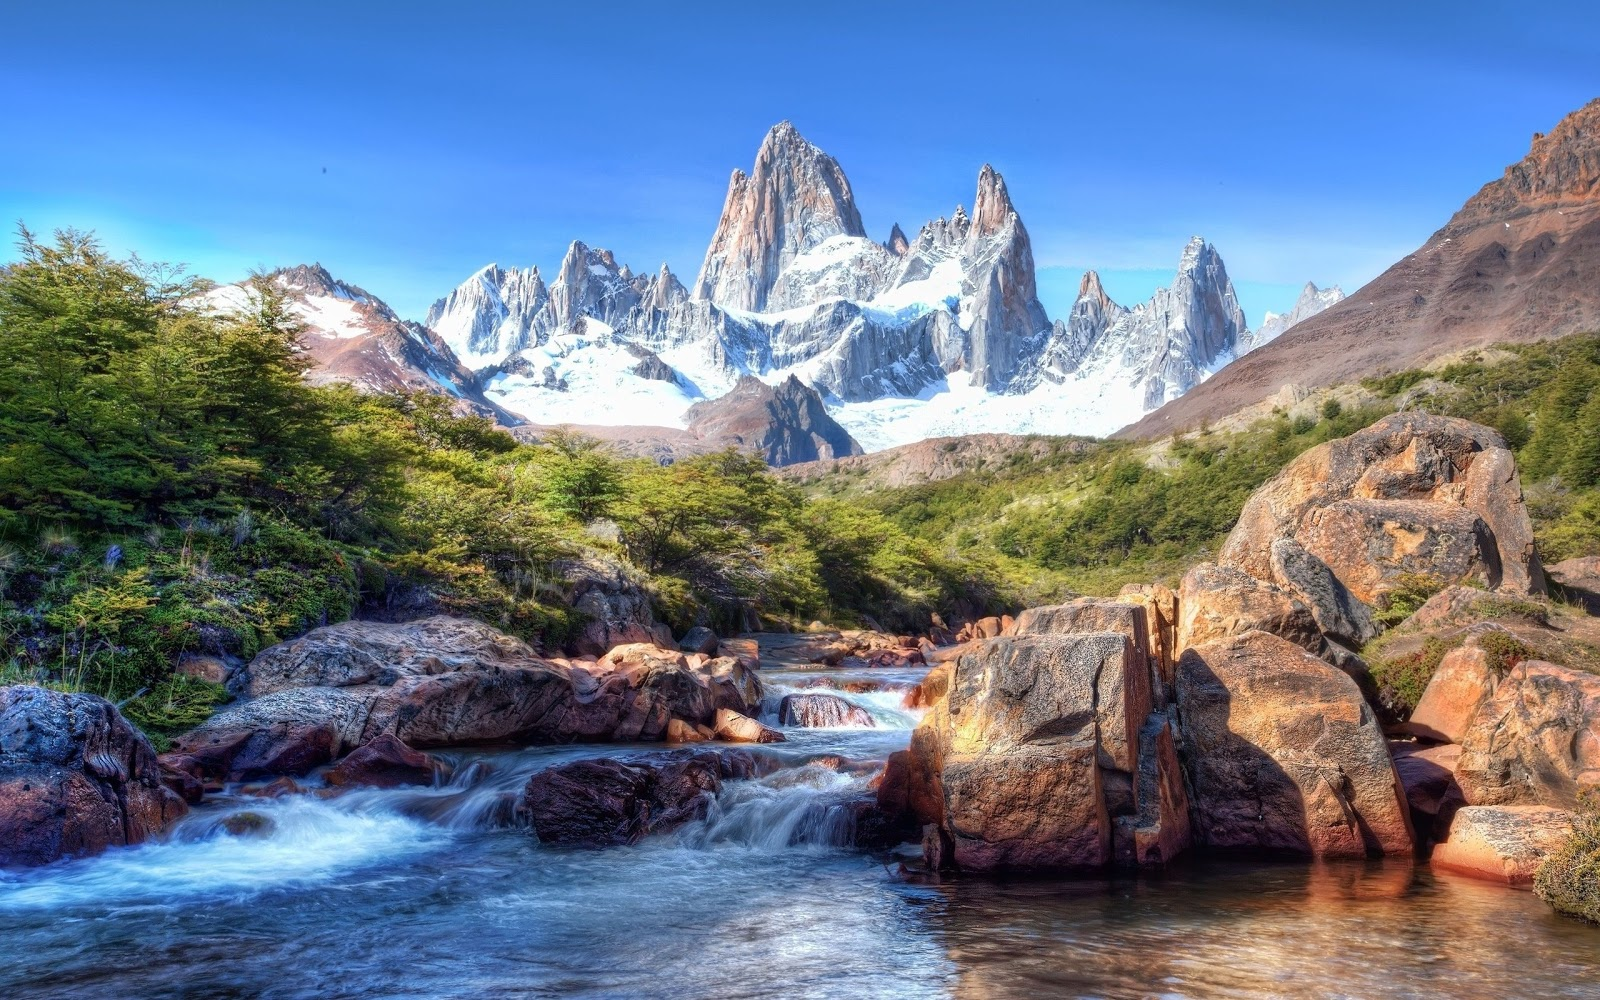 mountain screensavers and wallpaper backgrounds - photo #14